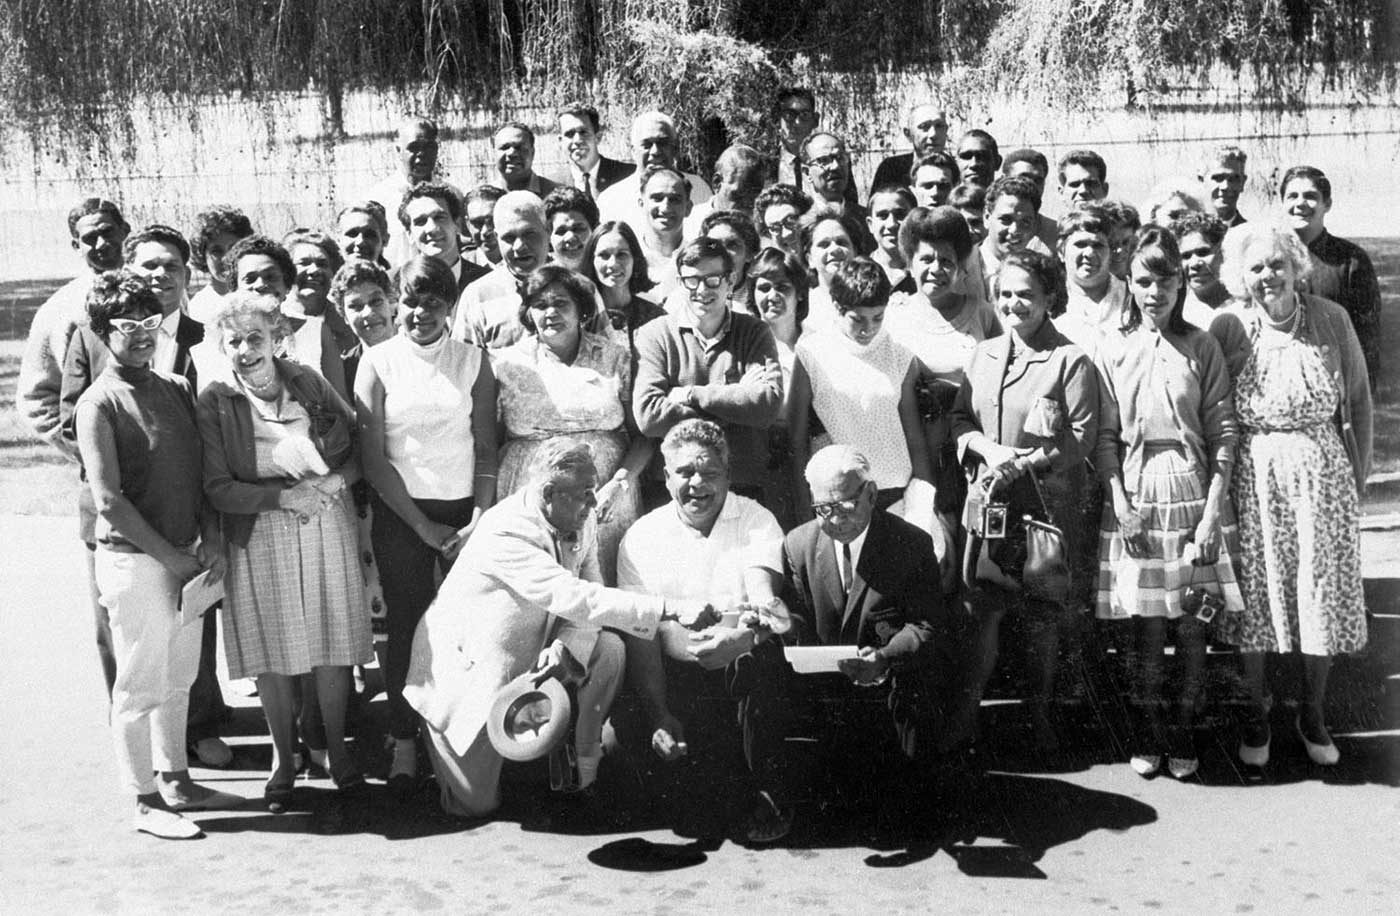 Black and white portrait photo of a large group of men and women.